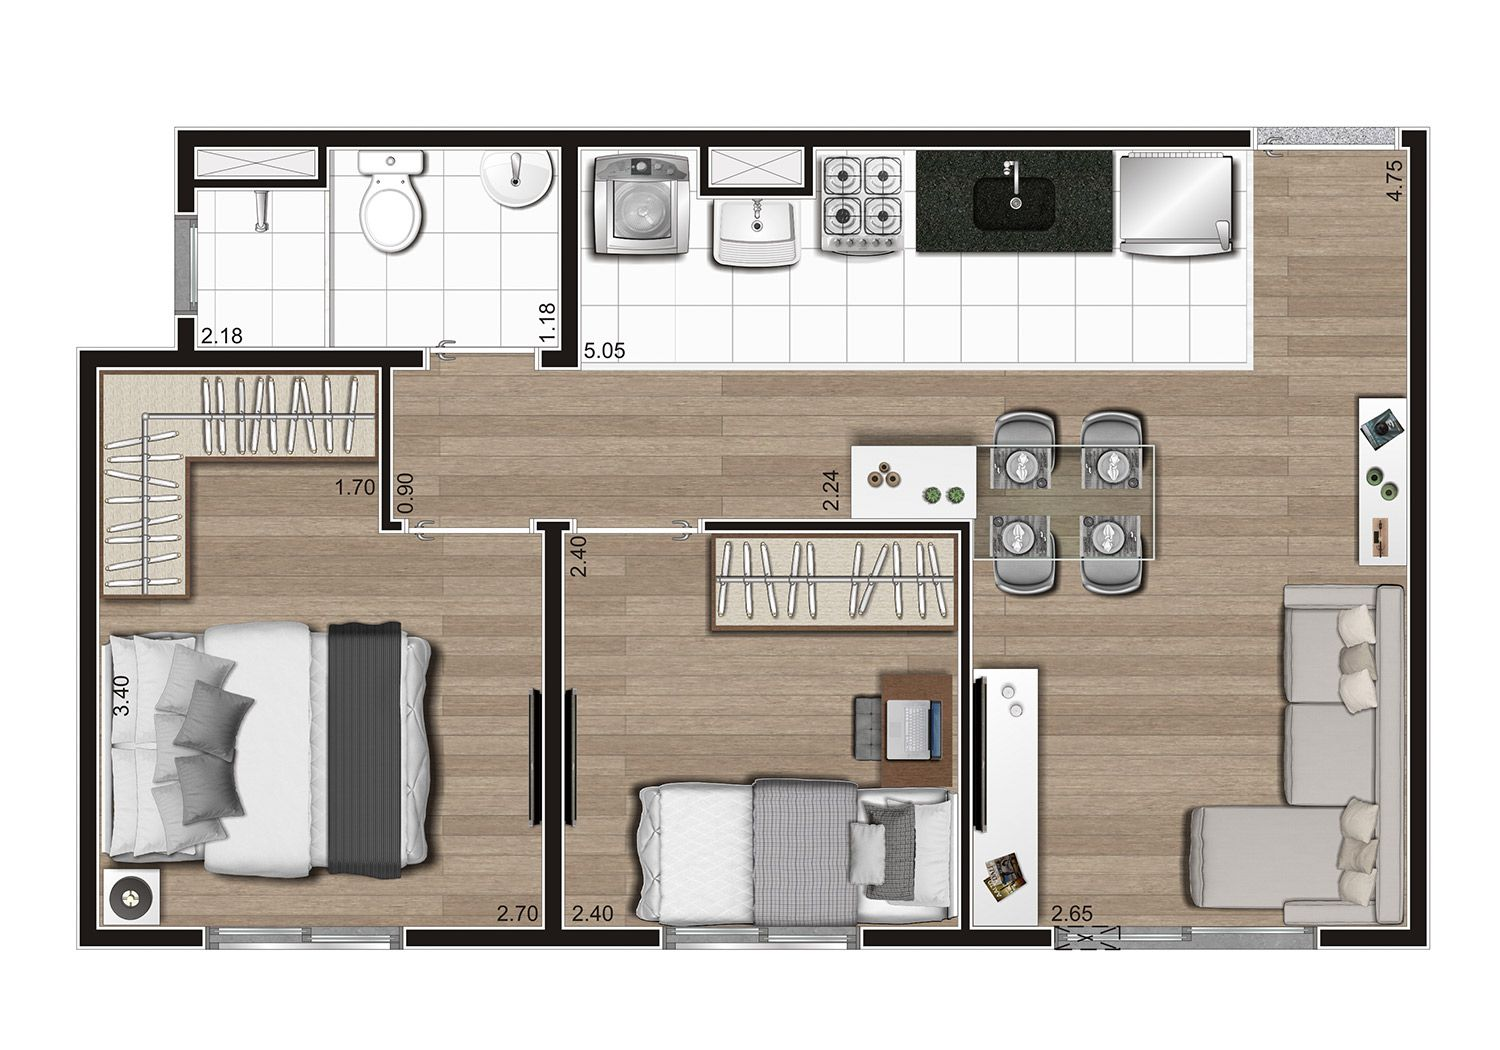 Planta do Look's. floorplan